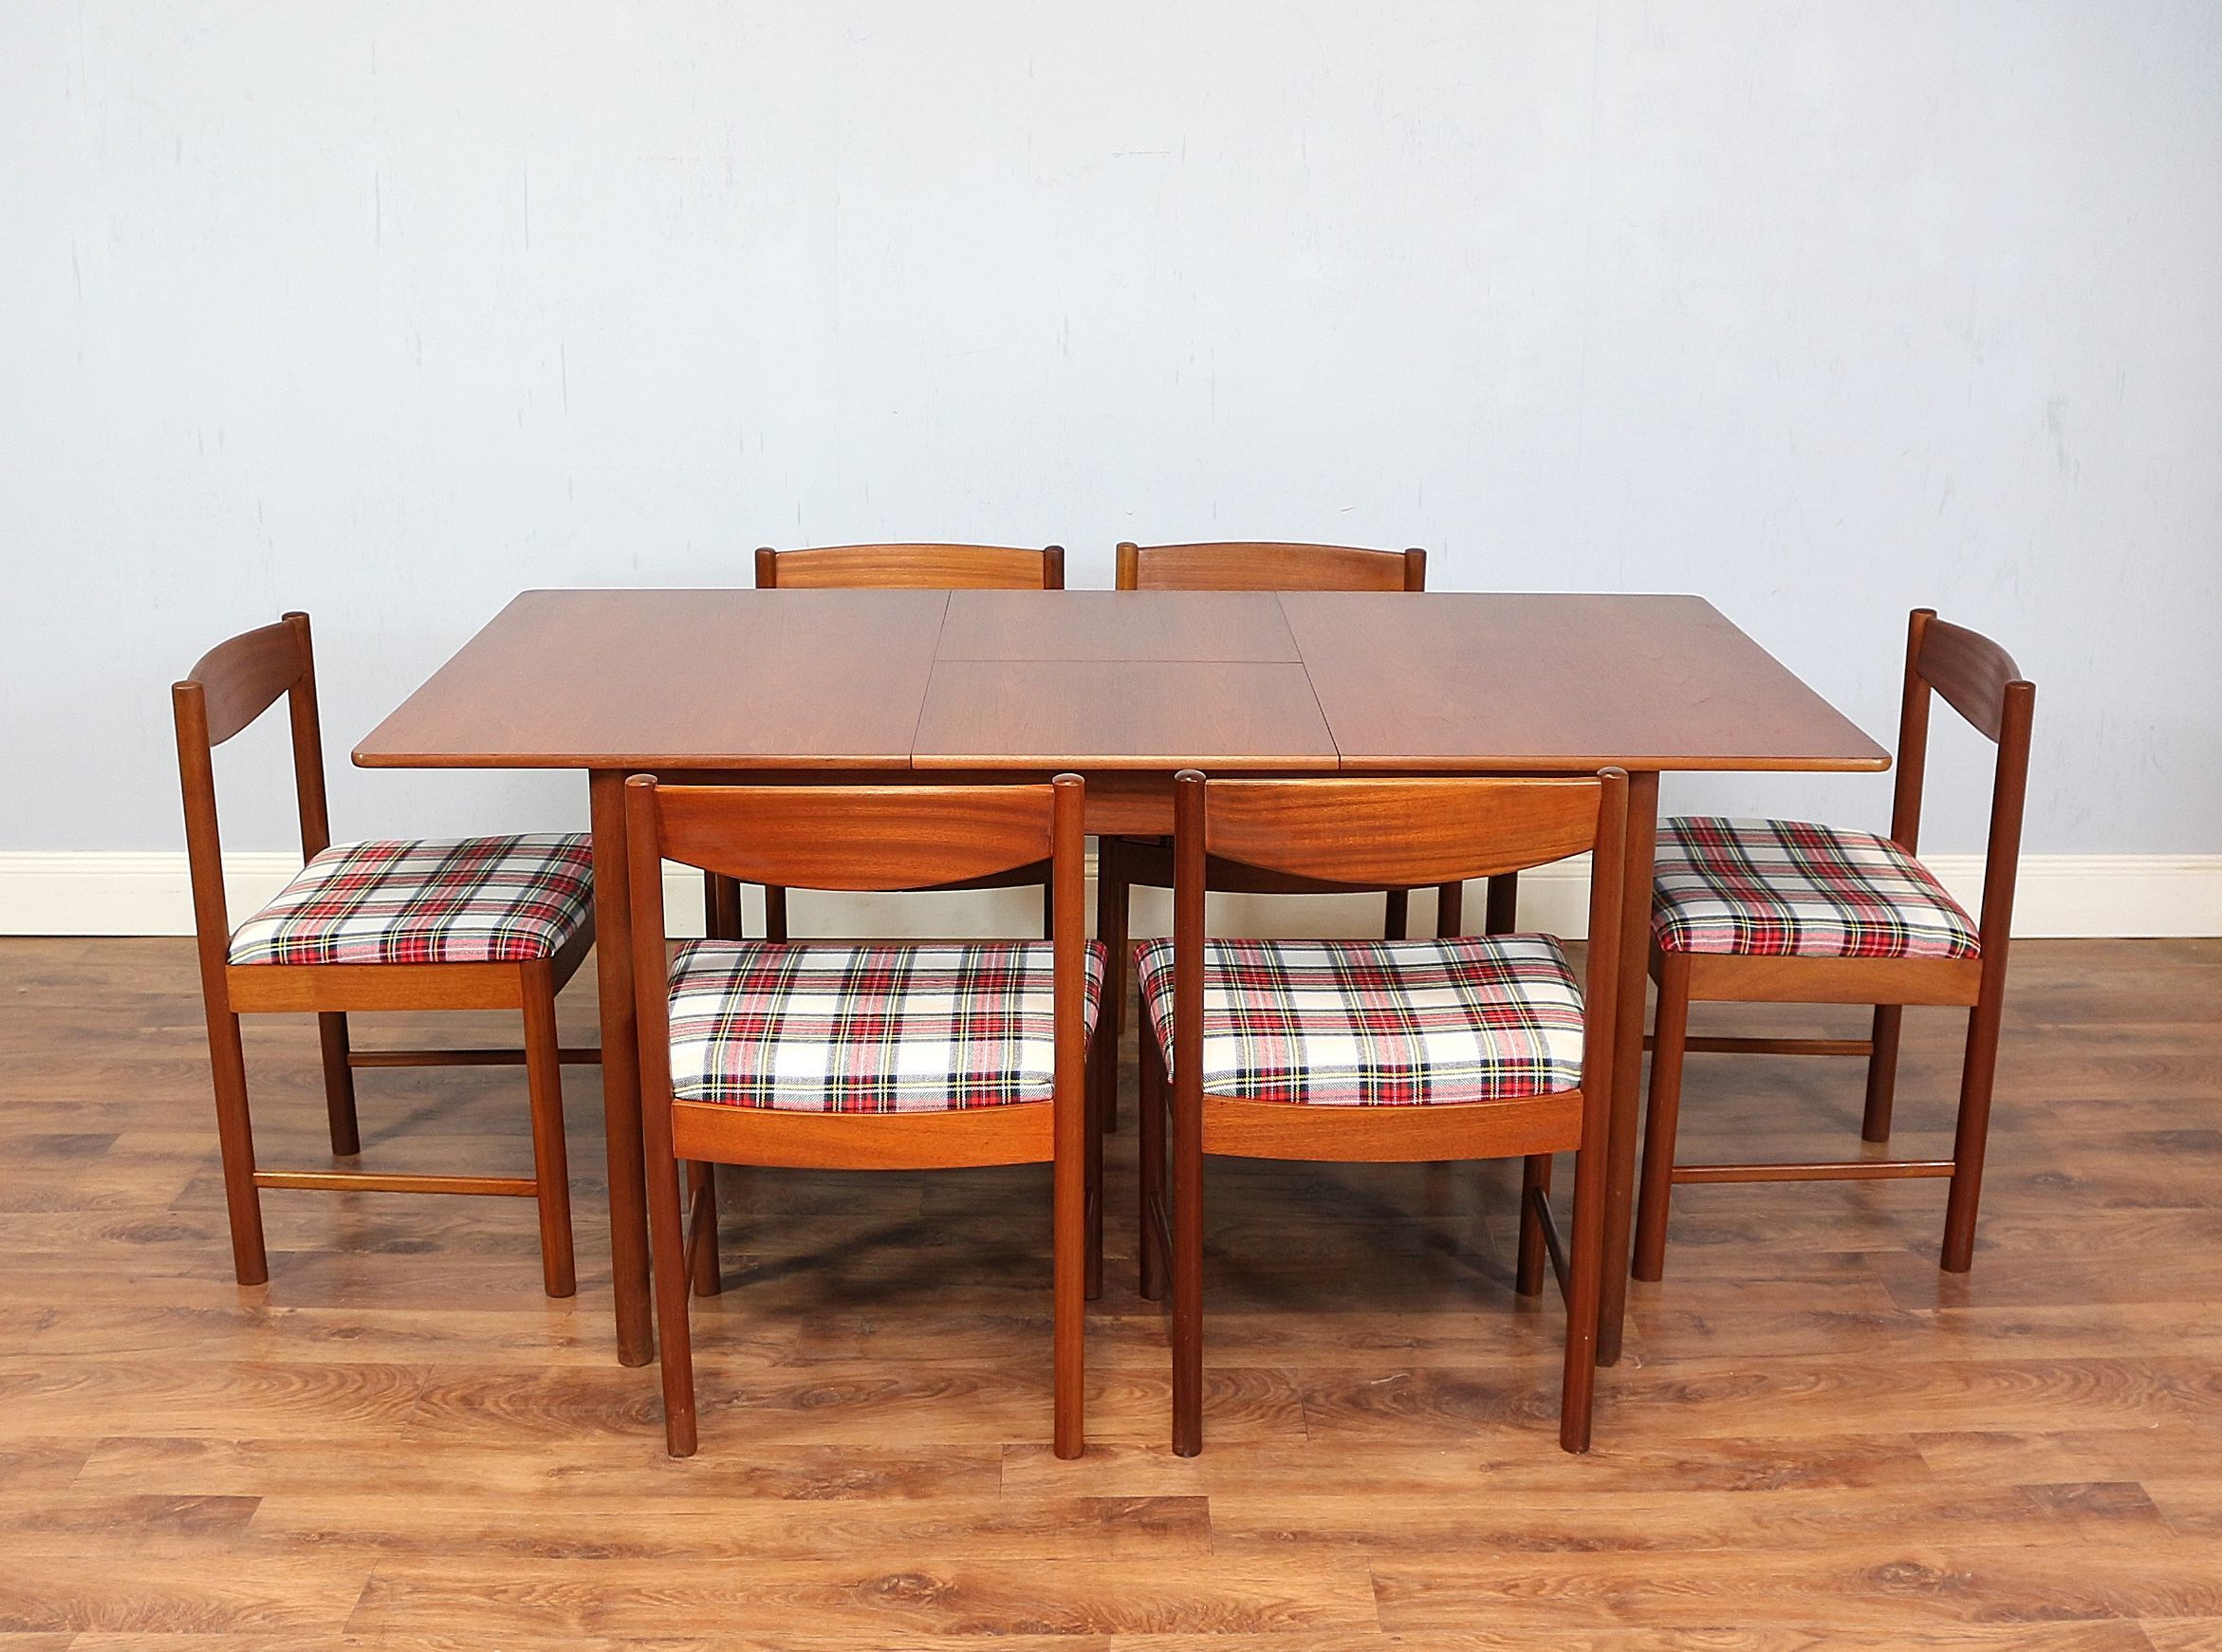 This Is A Beautifully Simple Mid Century Dining Table With Six Matching Chairs By Well Respected Furniture Makers McIntosh Of Kircaldy Dating From The